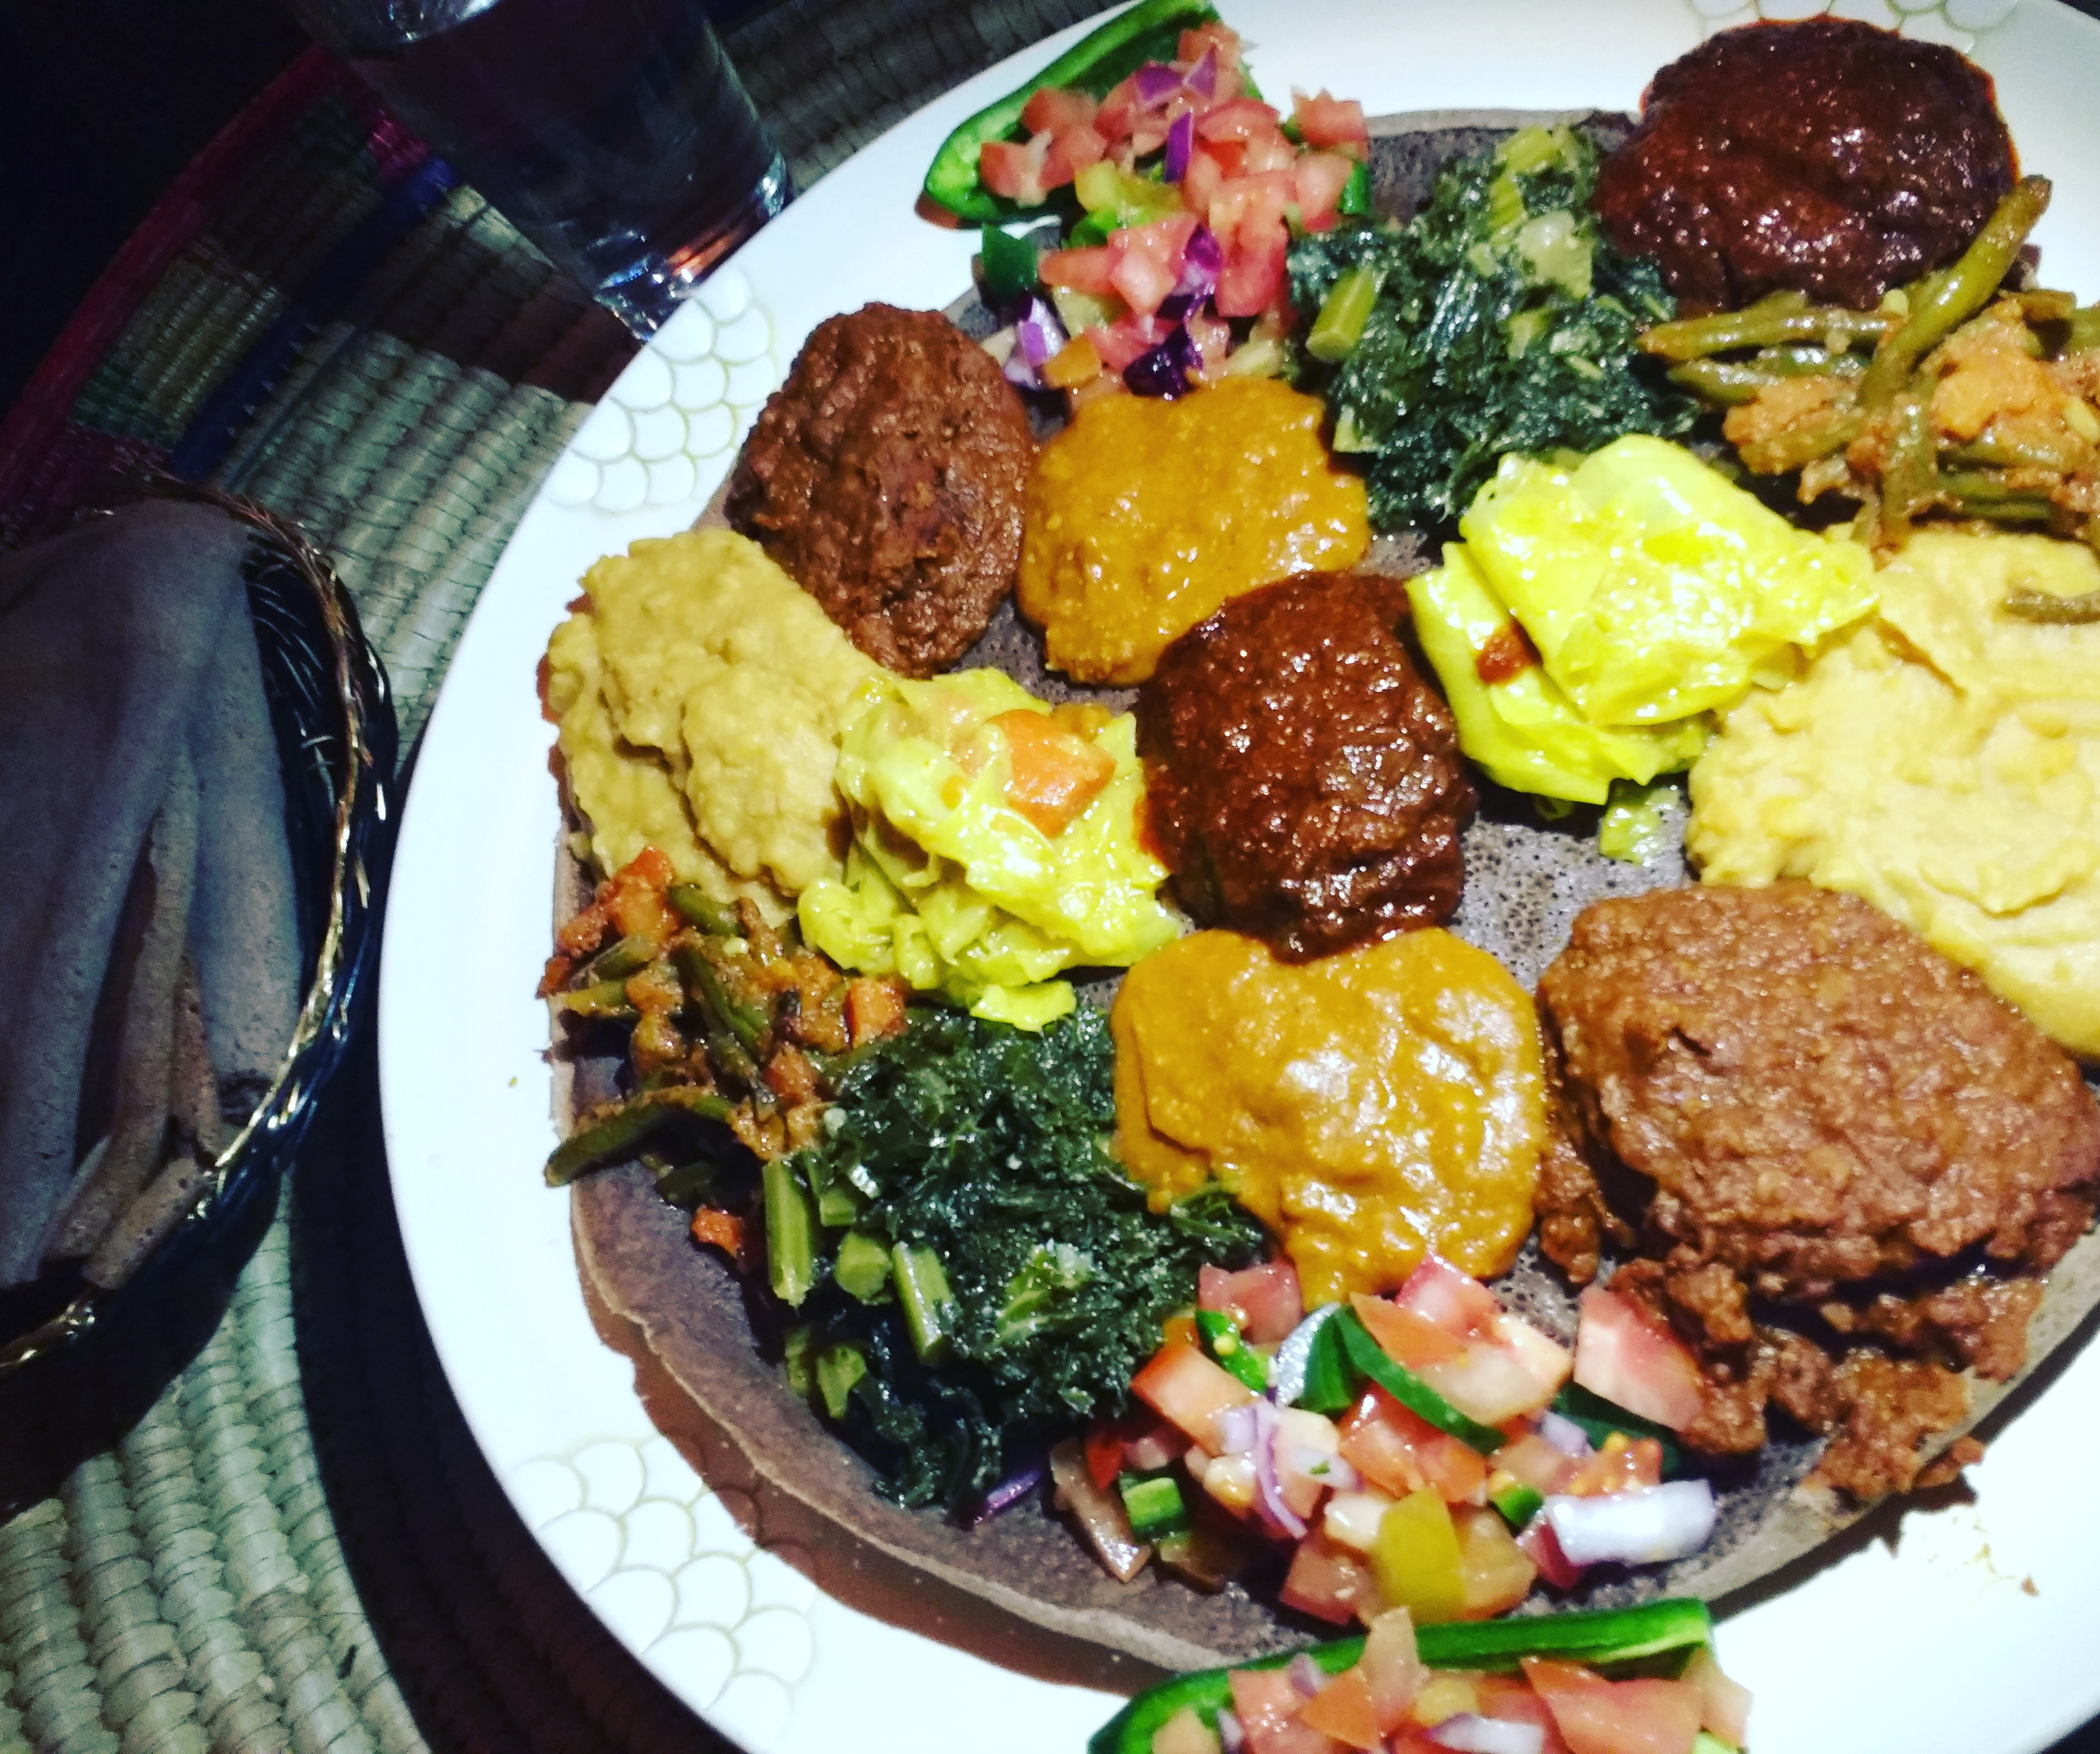 Whole foods archives vegan coach ethiopian food review of orit ethiopian restaurant in london forumfinder Gallery